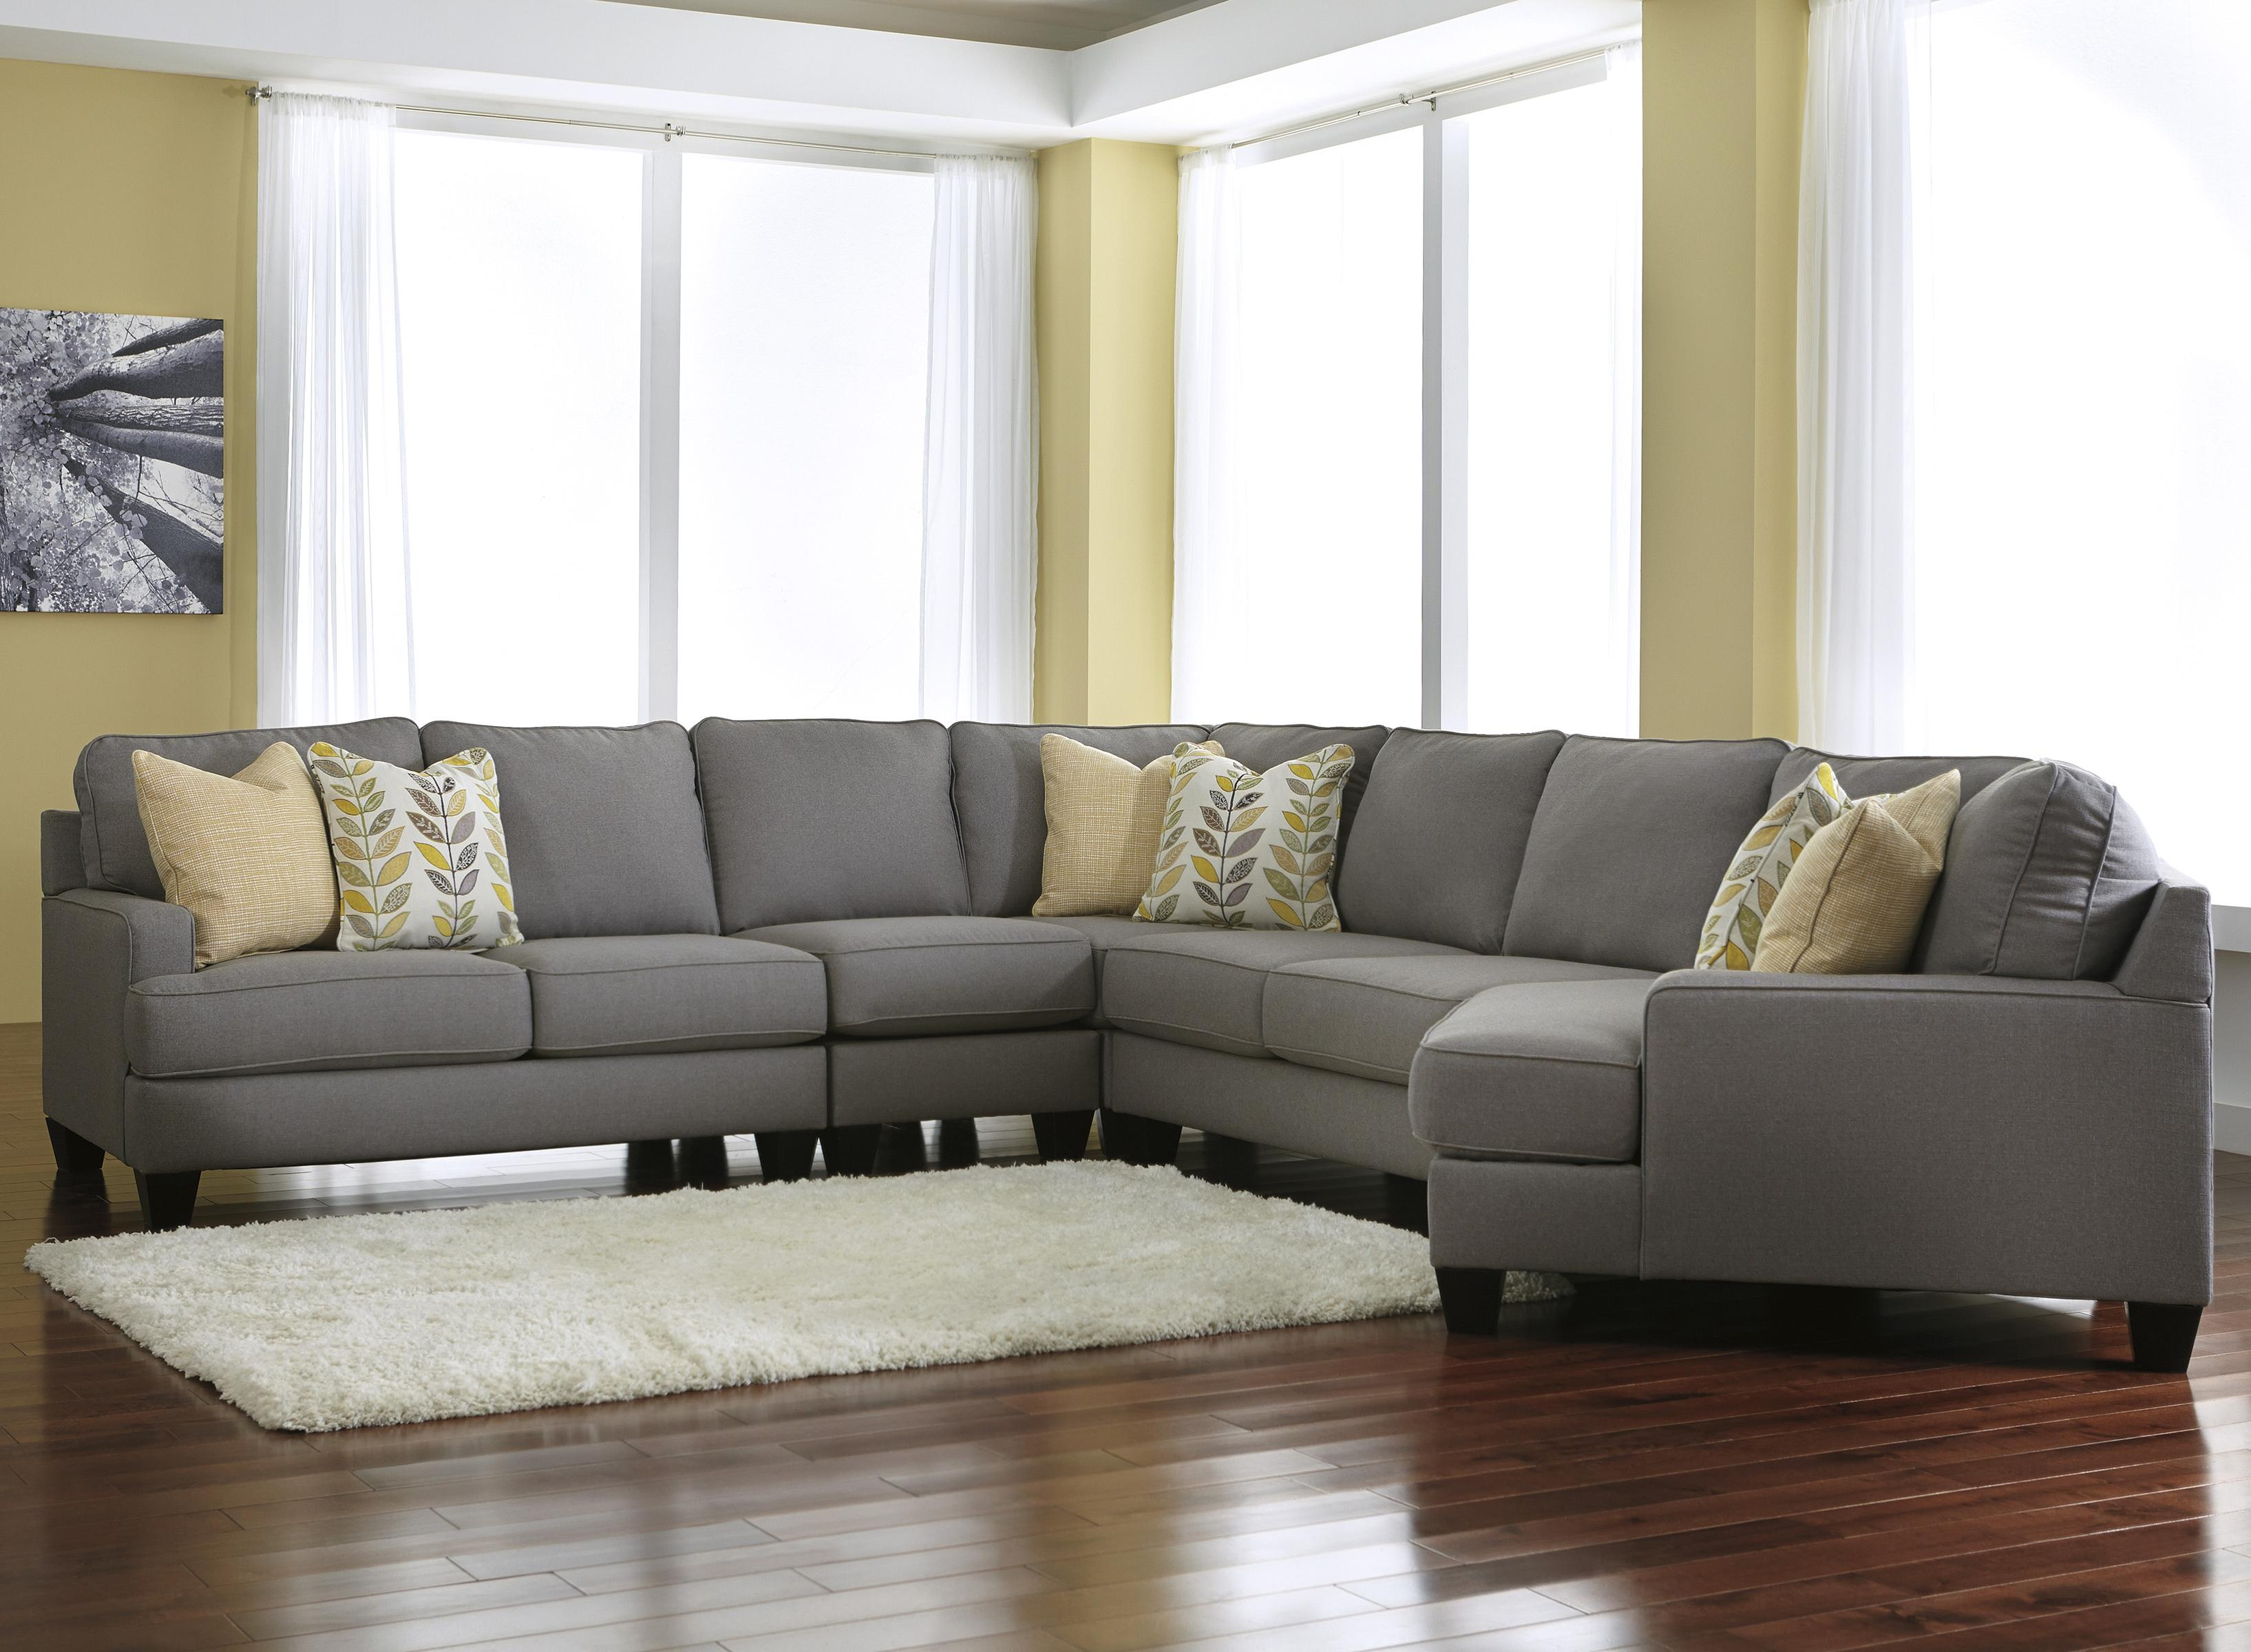 Modern 5-Piece Sectional Sofa with Right Cuddler u0026 Reversible Seat Cushions : sofa with cuddler sectional - Sectionals, Sofas & Couches